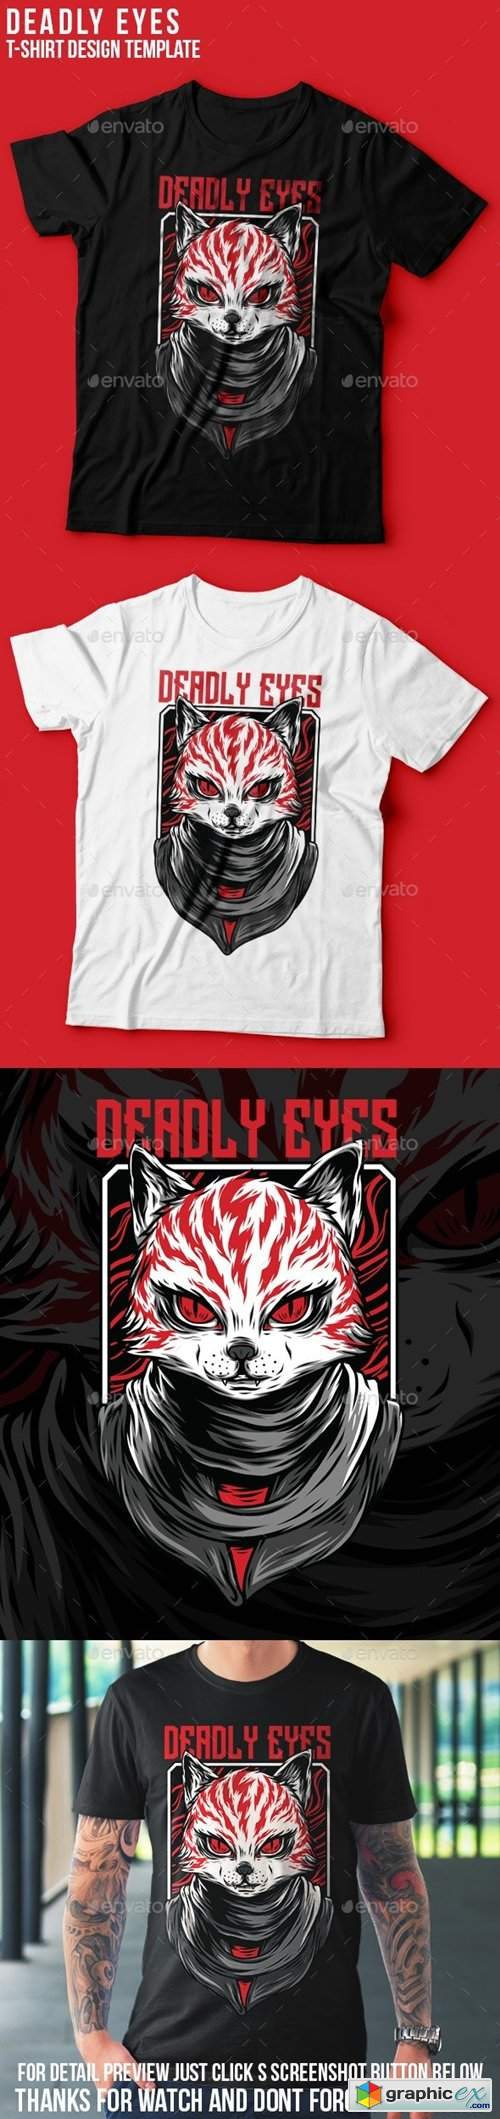 Deadly Eyes T-Shirt Design